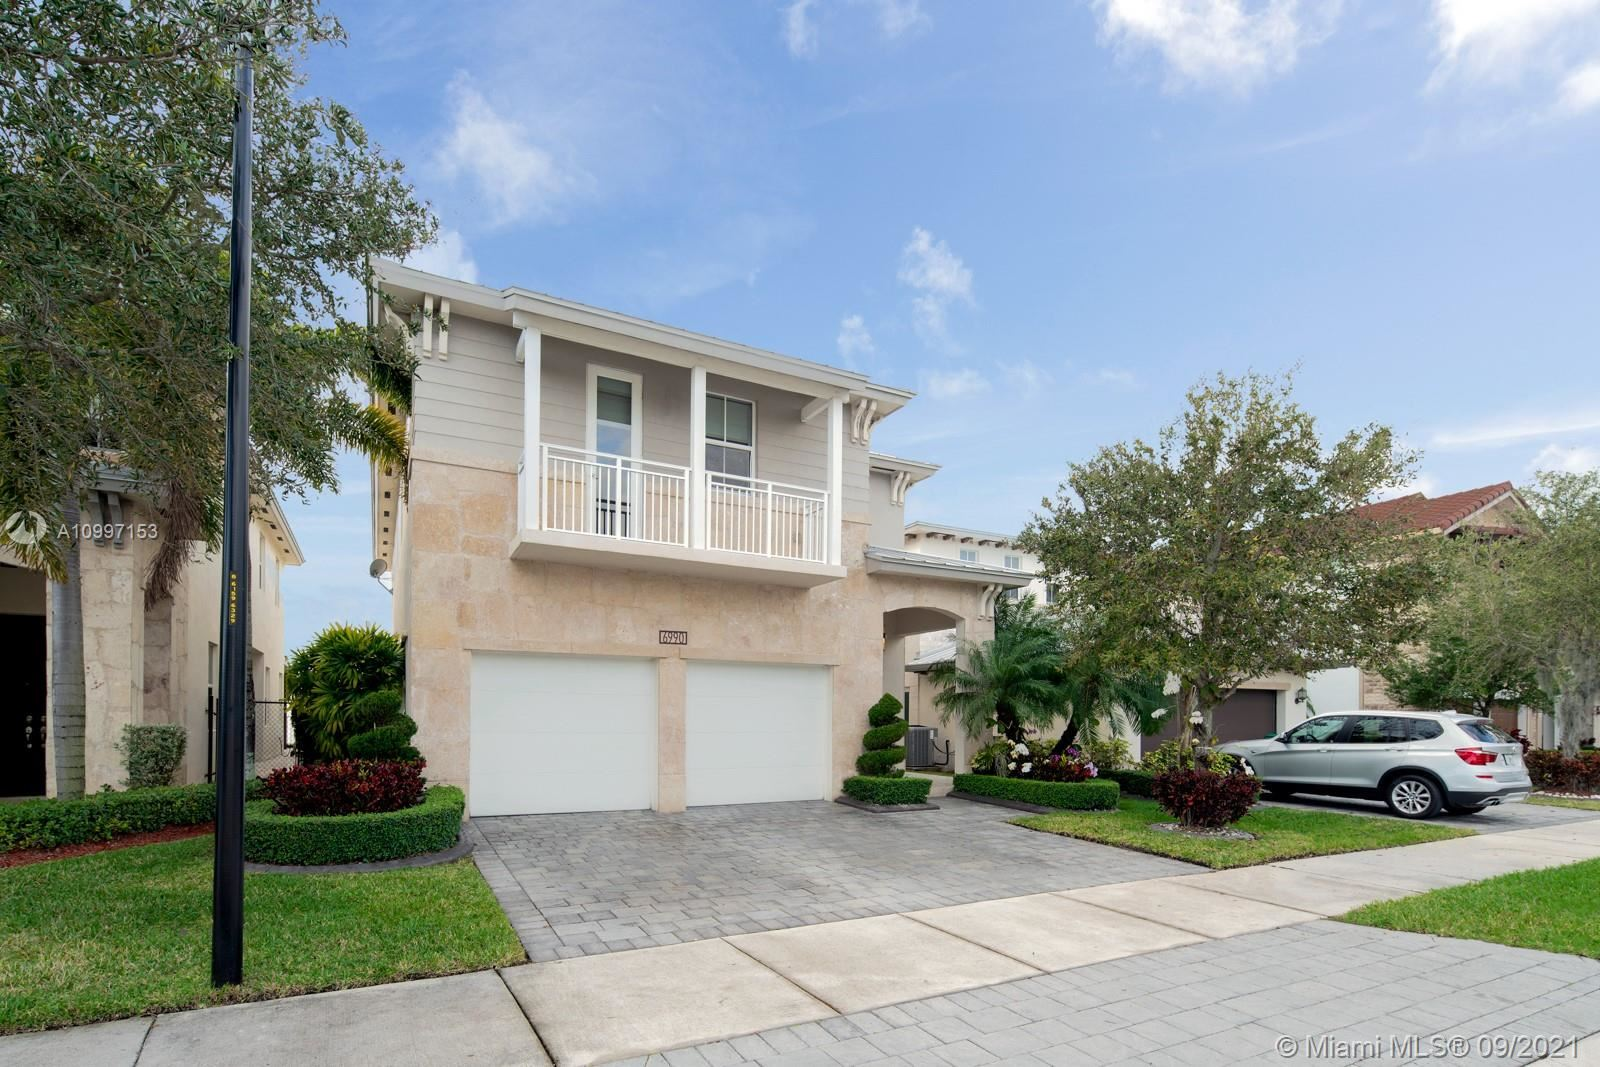 Photo of 6990 NW 104th Ct, Doral, FL 33178 (MLS # A10997153)